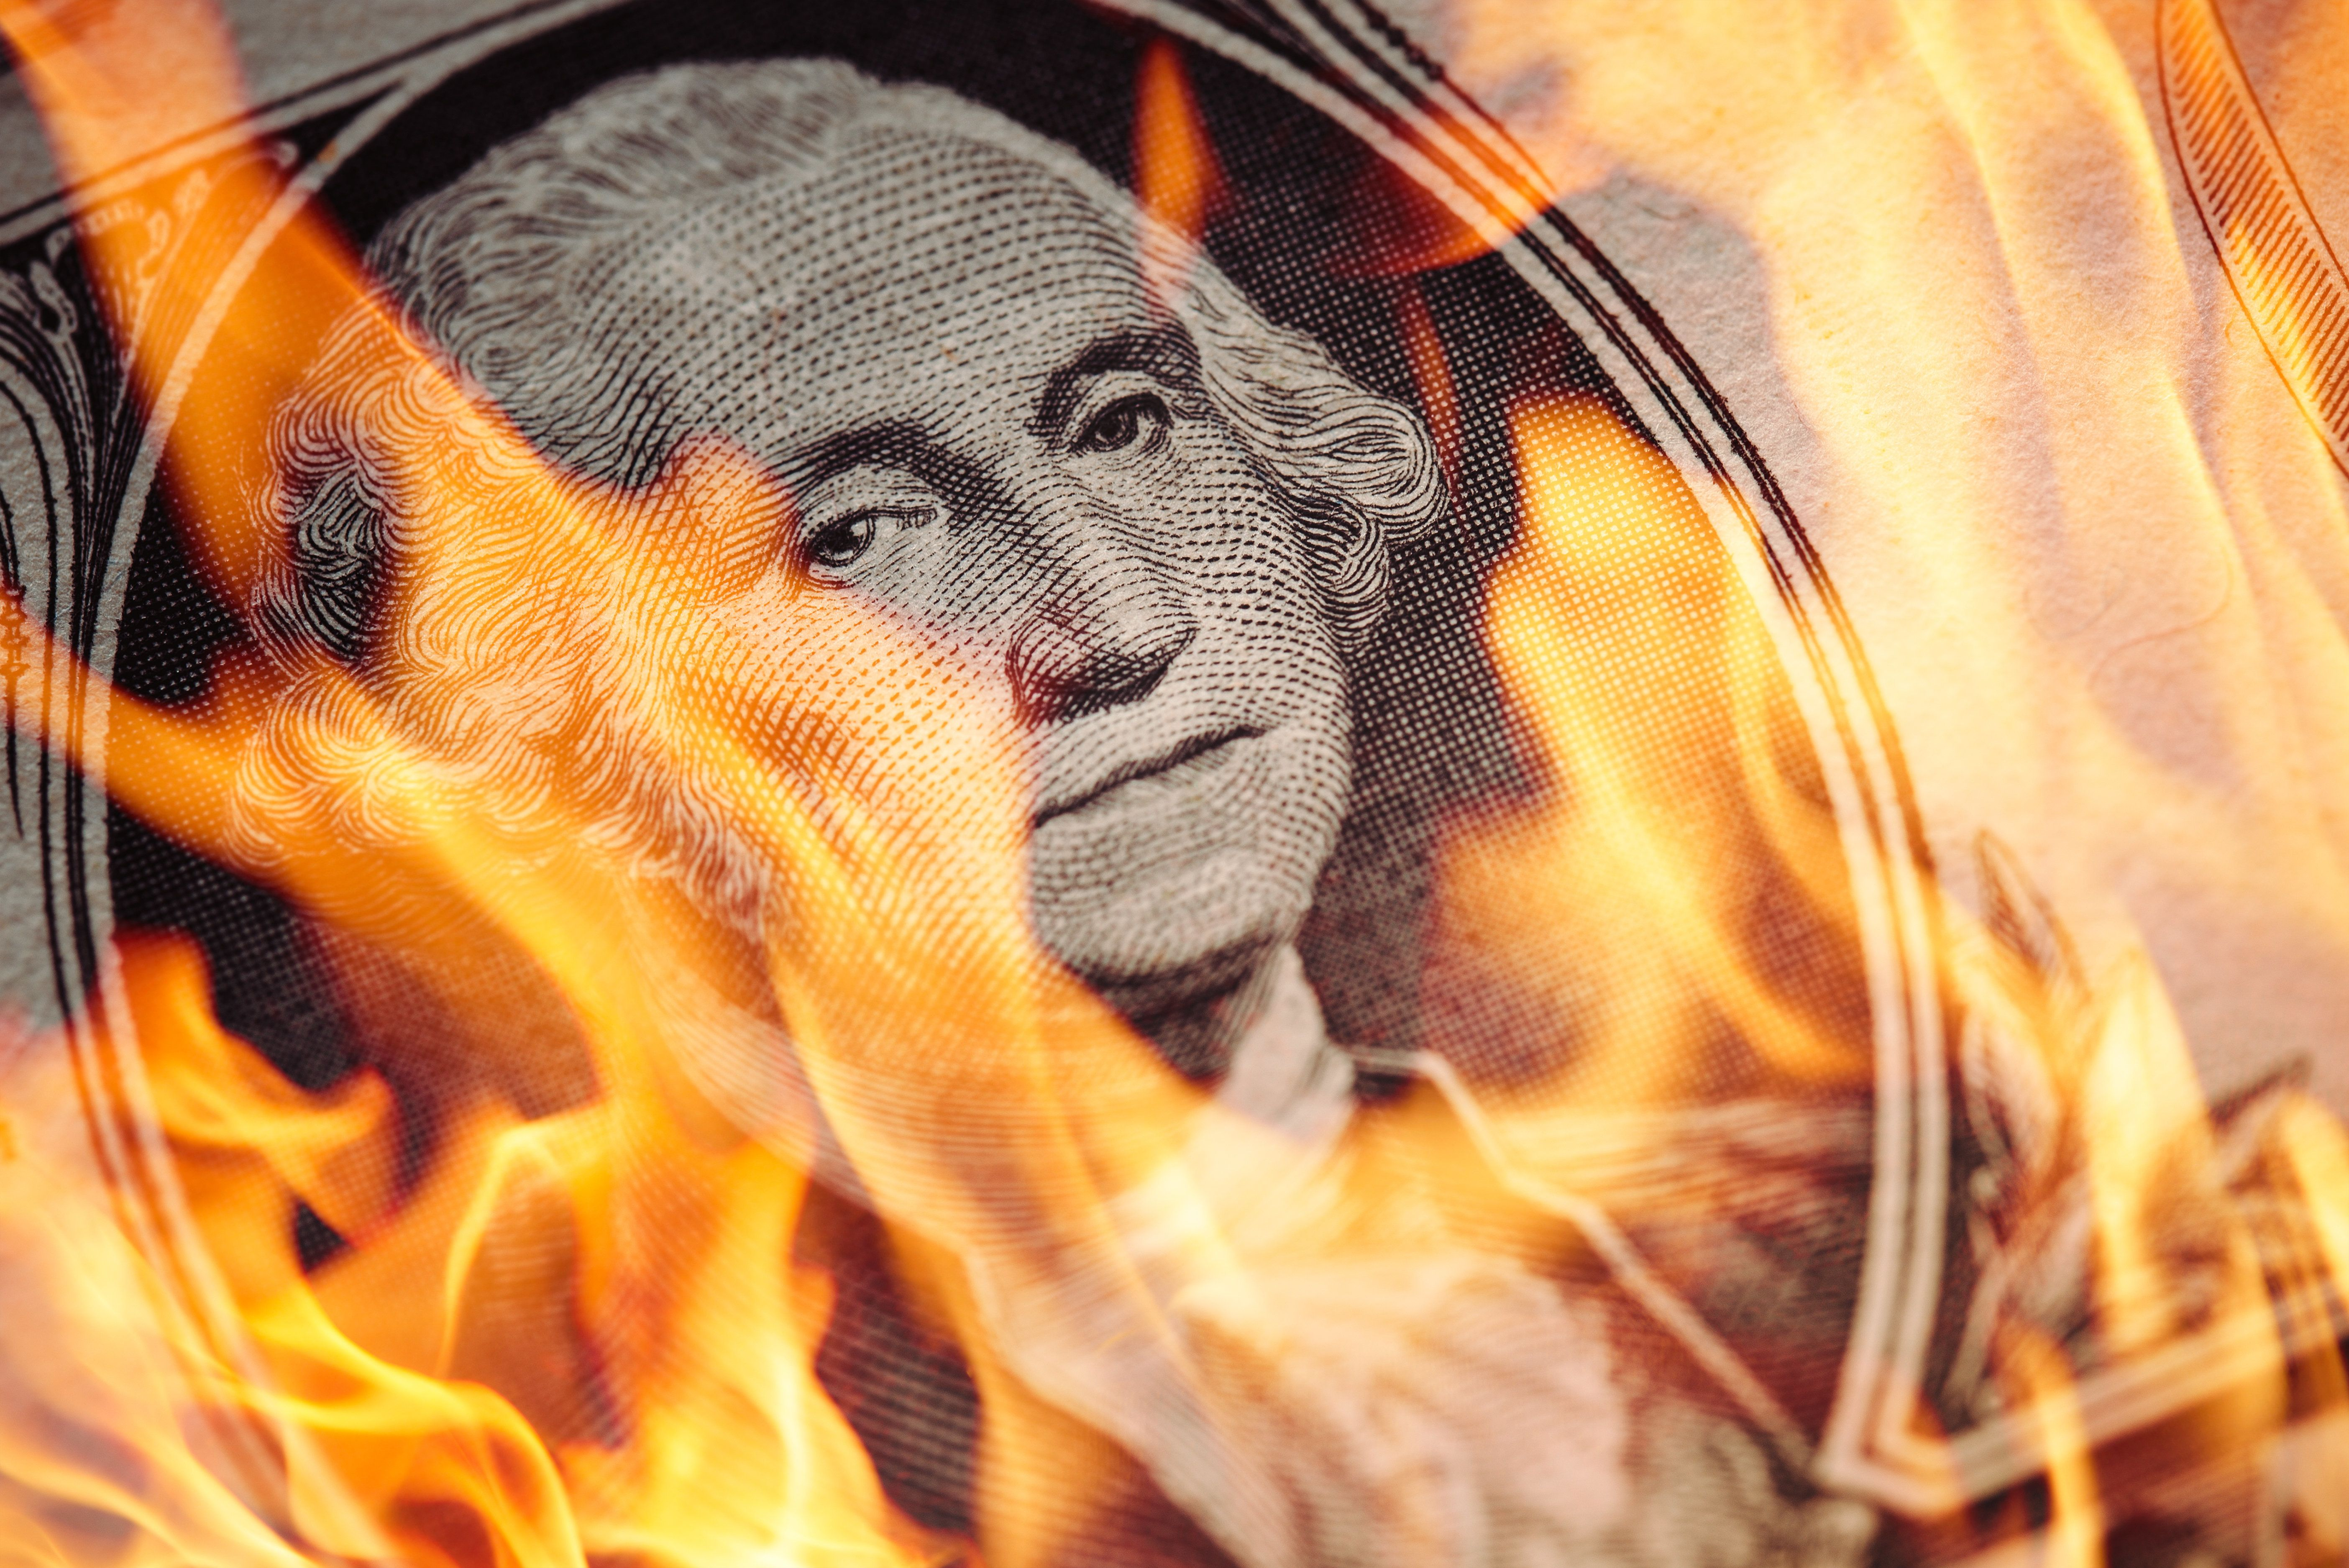 7 Things You Can Learn From The 'FIRE' Early Retirement